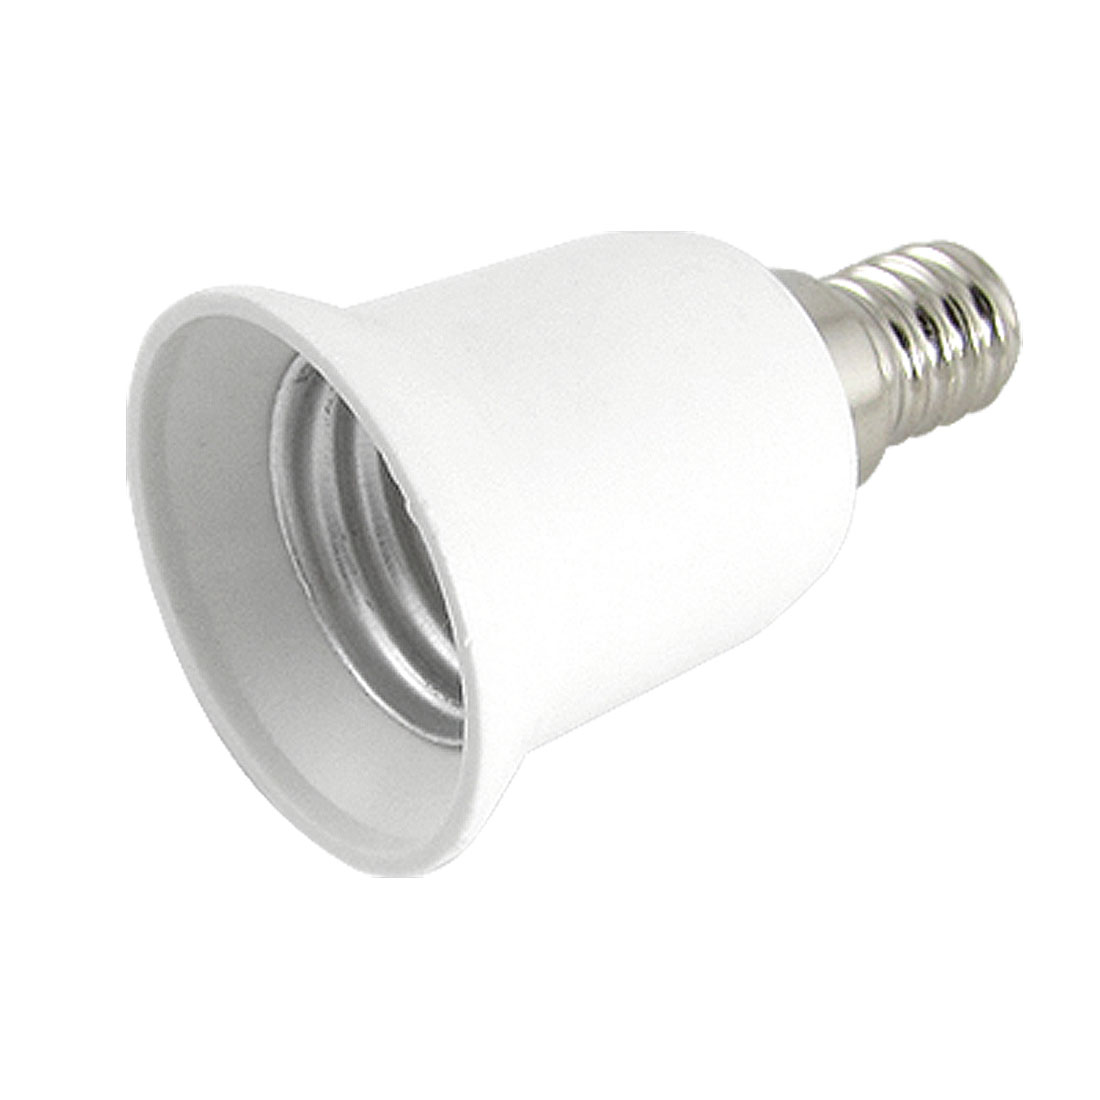 E27 to E14 Light Lamp Bulb Socket Adapter Convertor